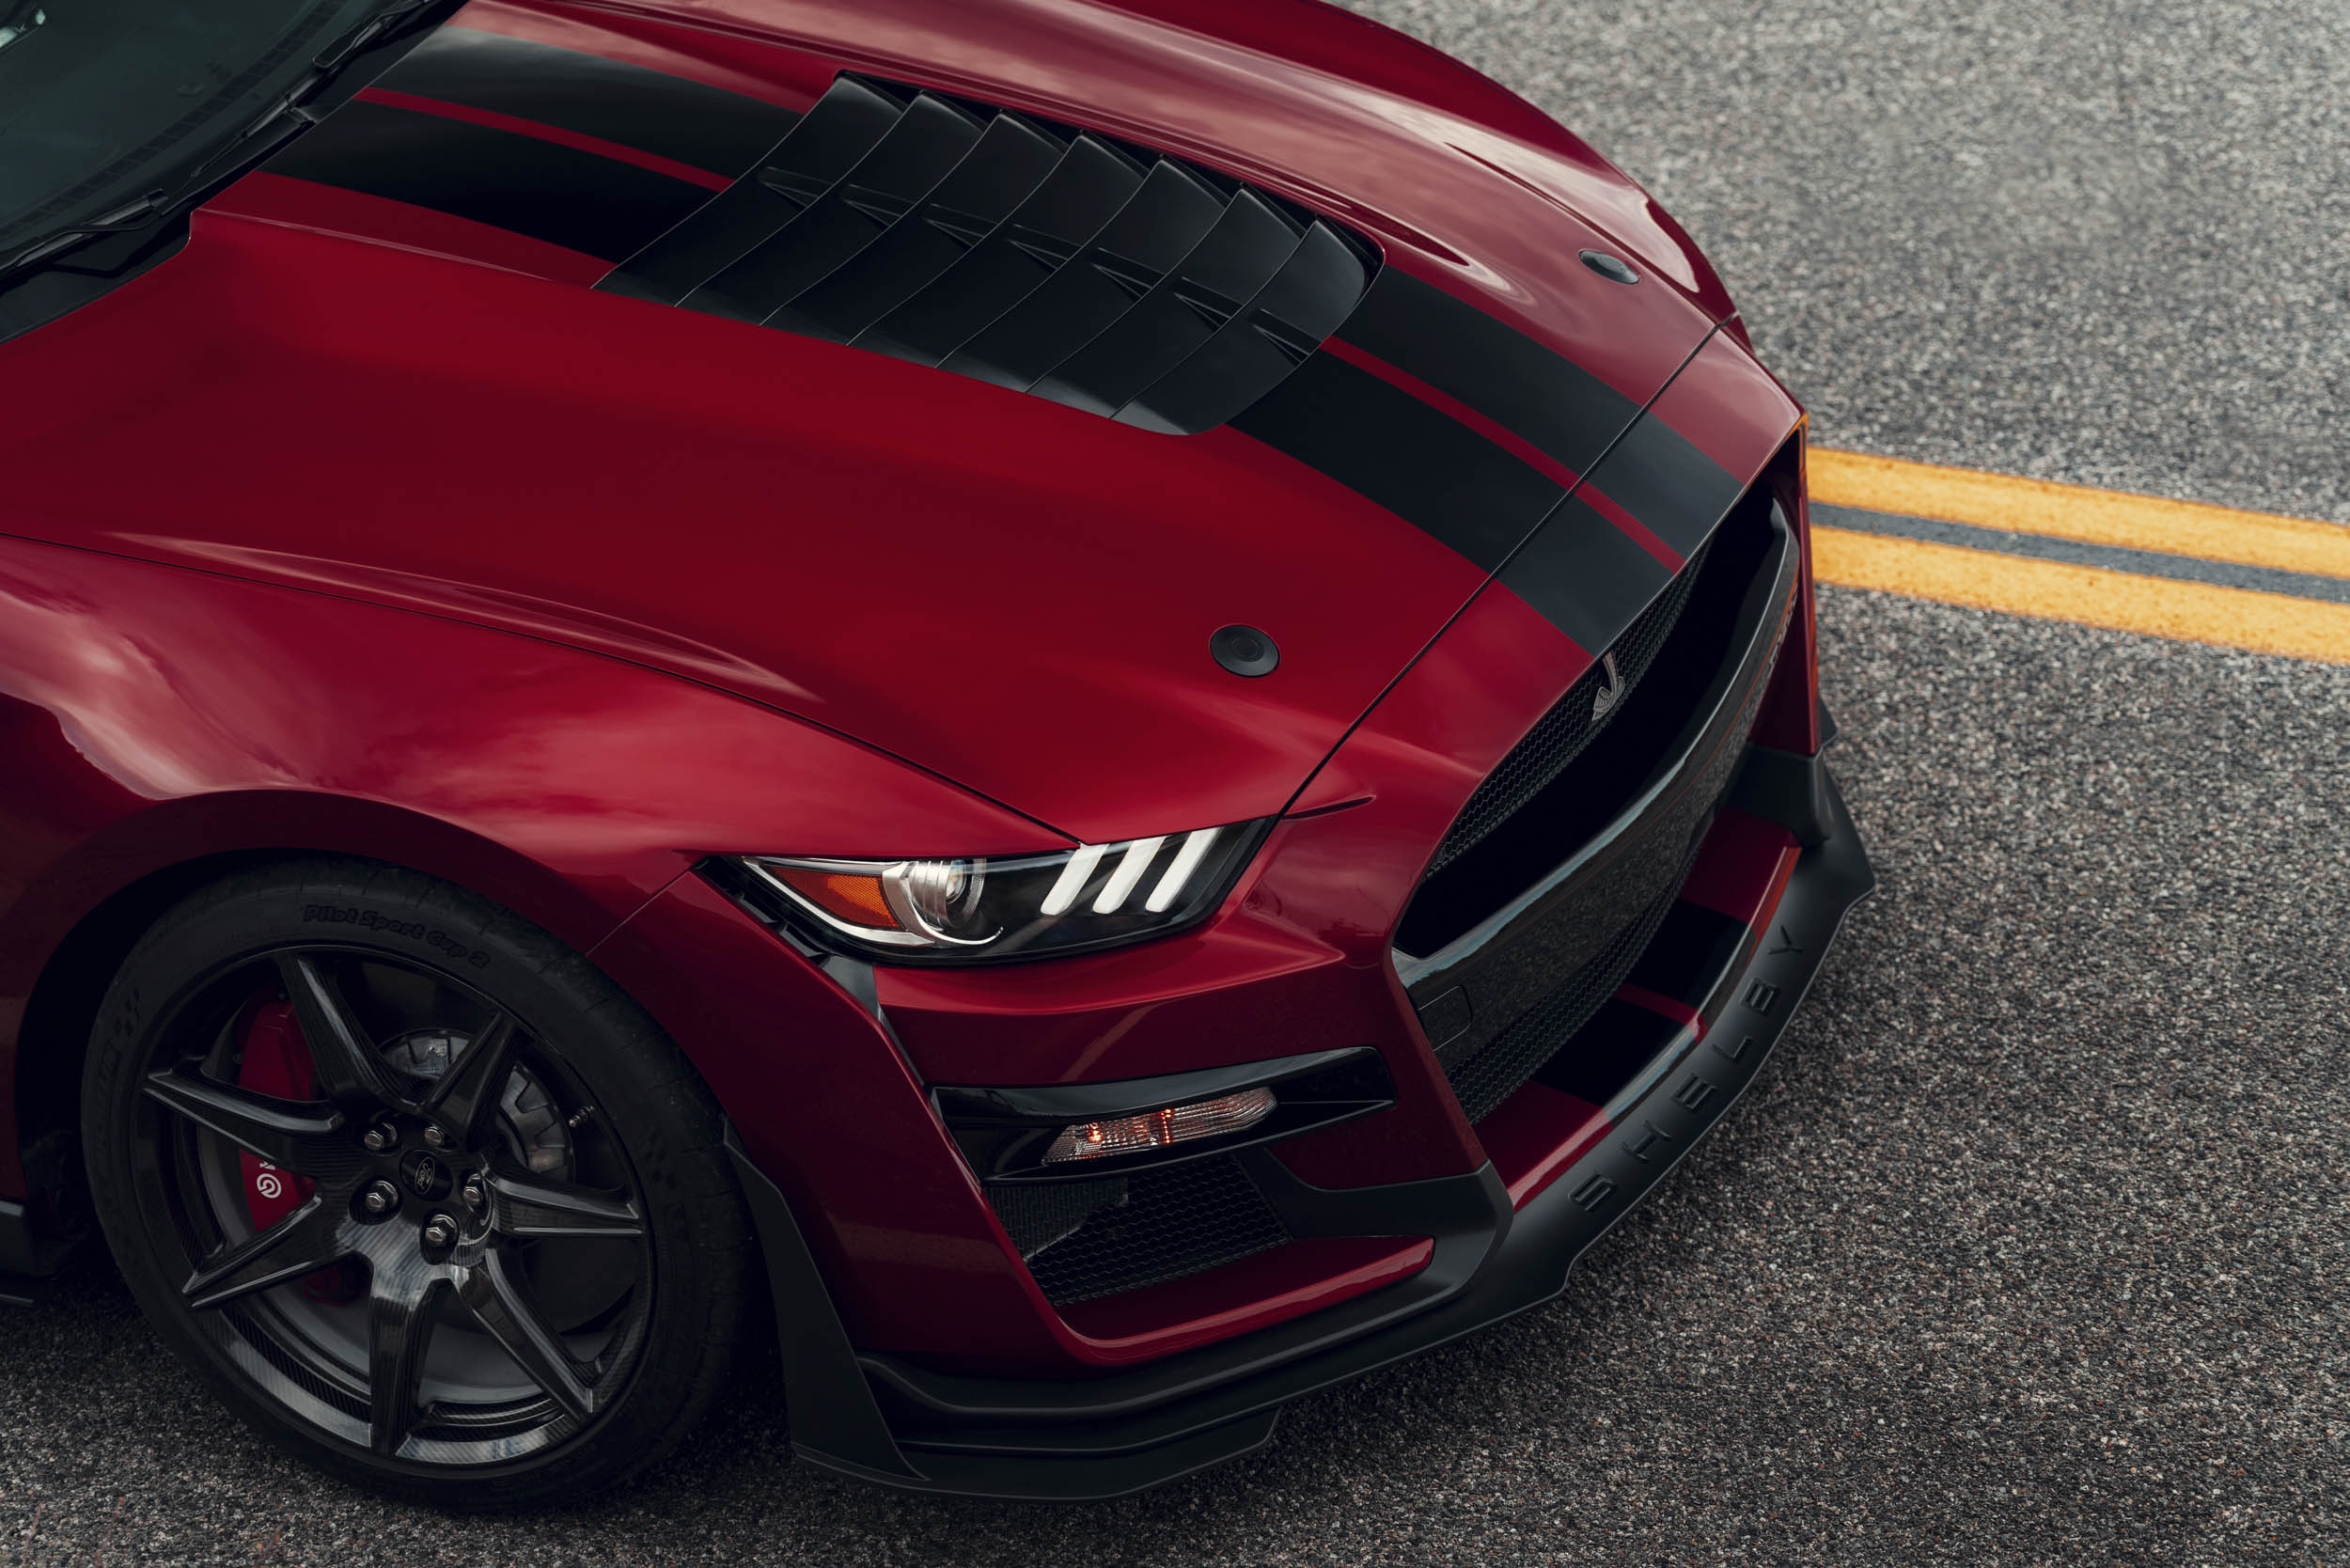 2020 Mustang Shelby GT500 nose